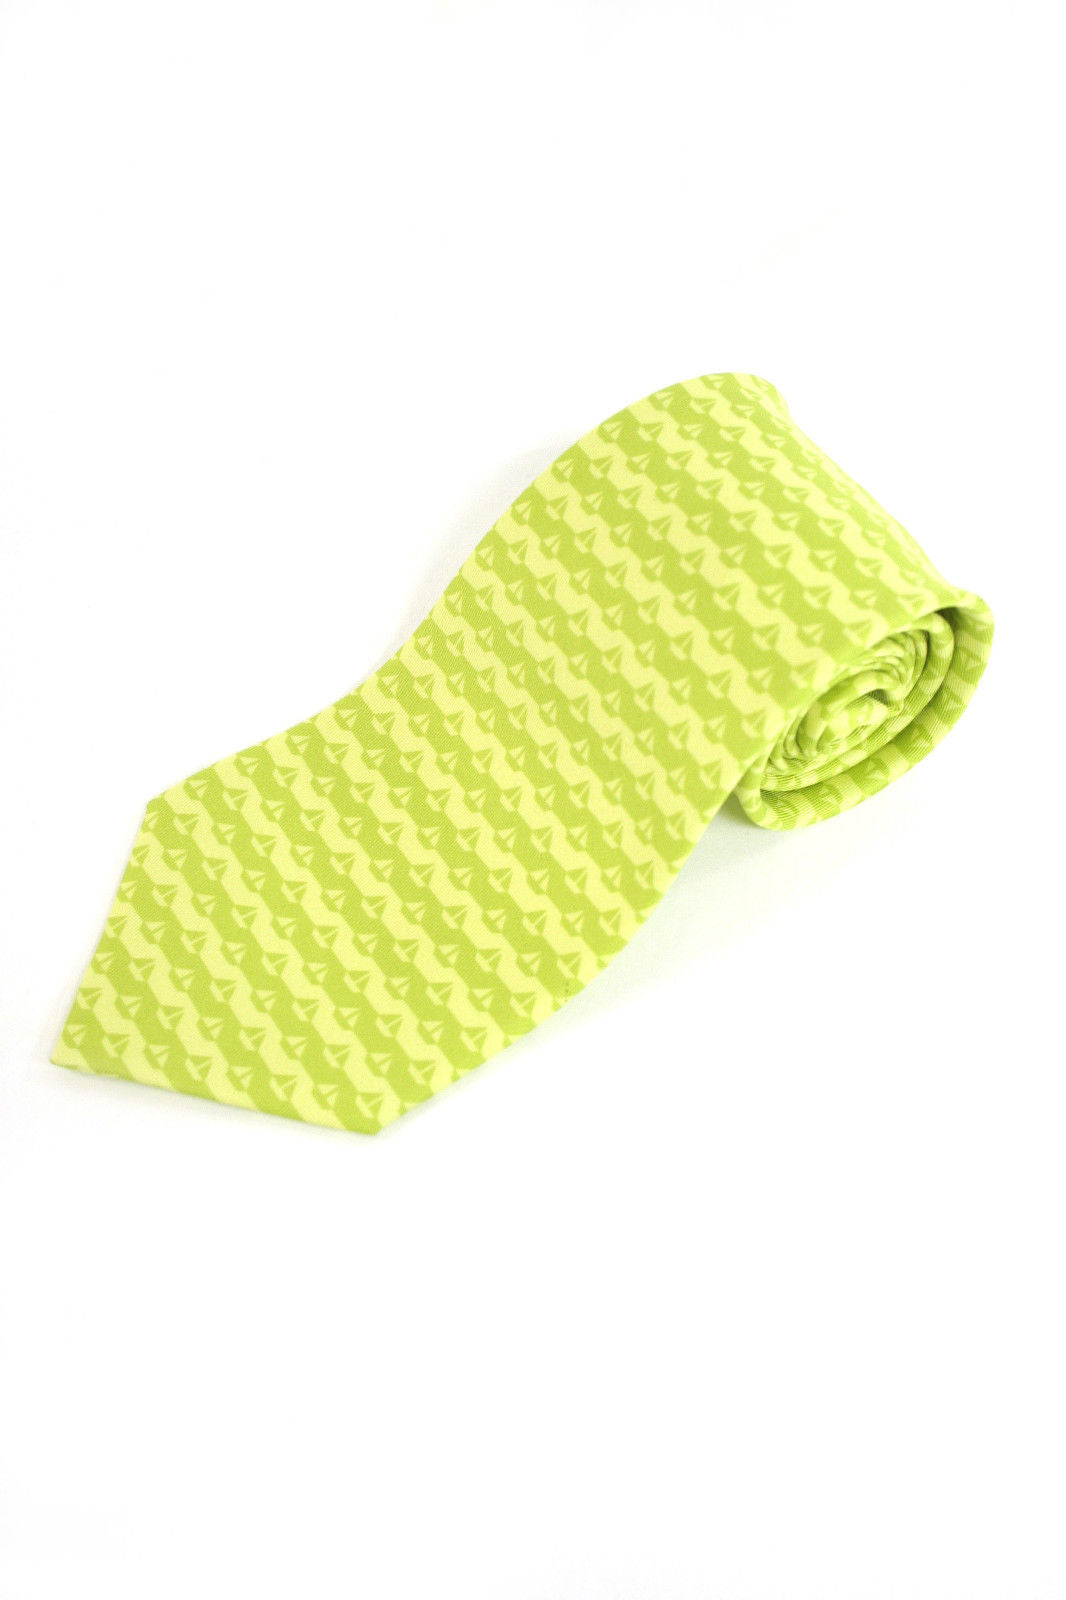 Unique HERMES Yellow/Lime Green Sail-Boat Print Silk Twill Men's Tie  ST34